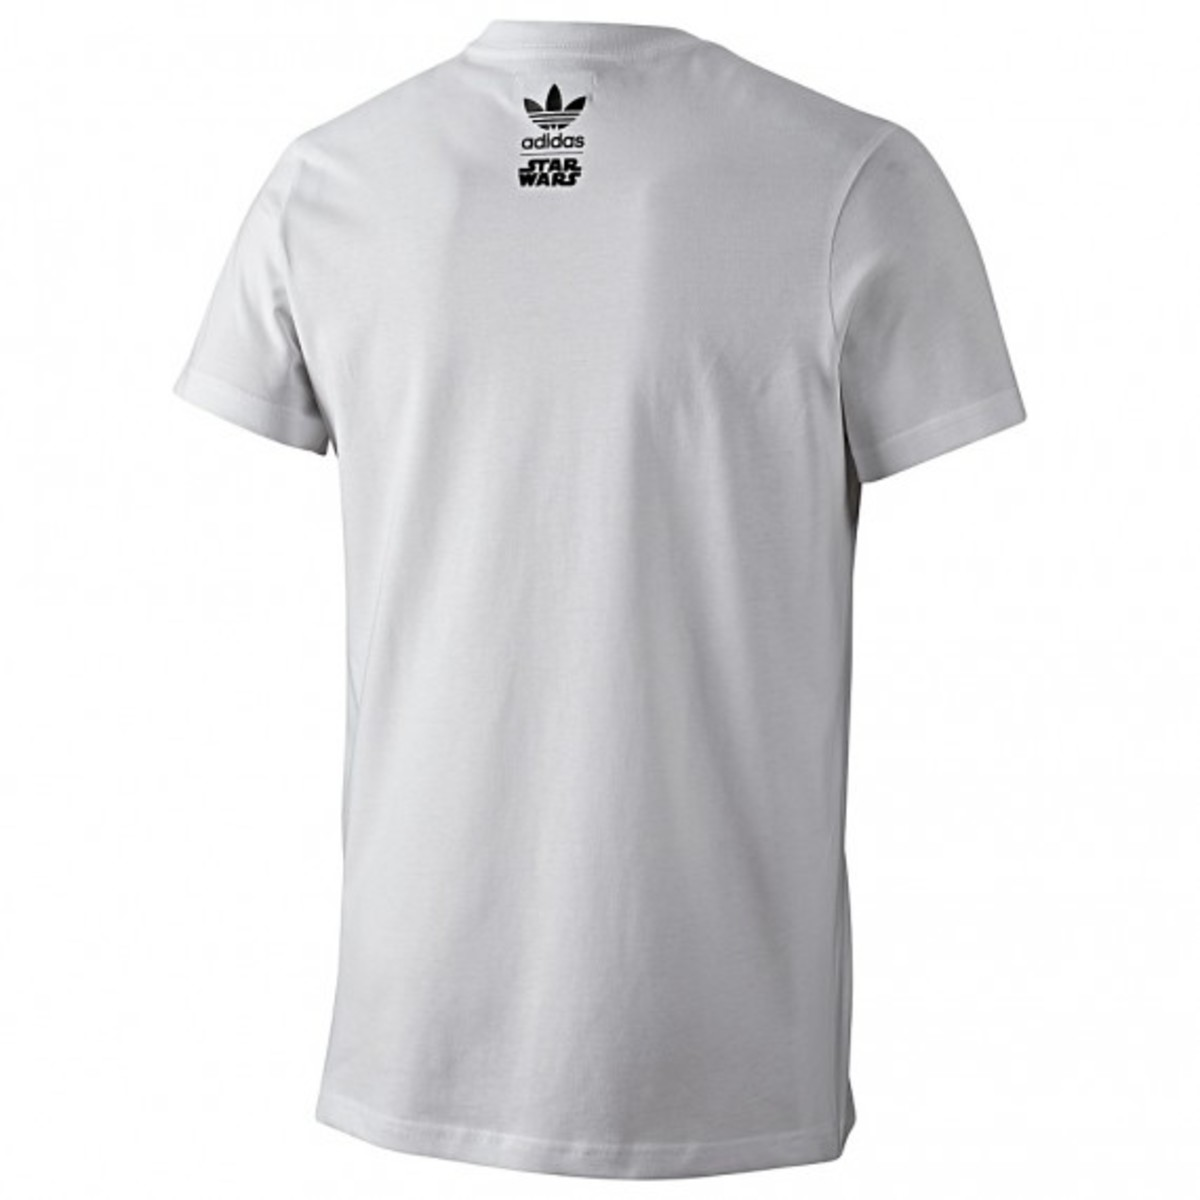 star-wars-adidas-originals-hoth-collection-apparel-available-now-18